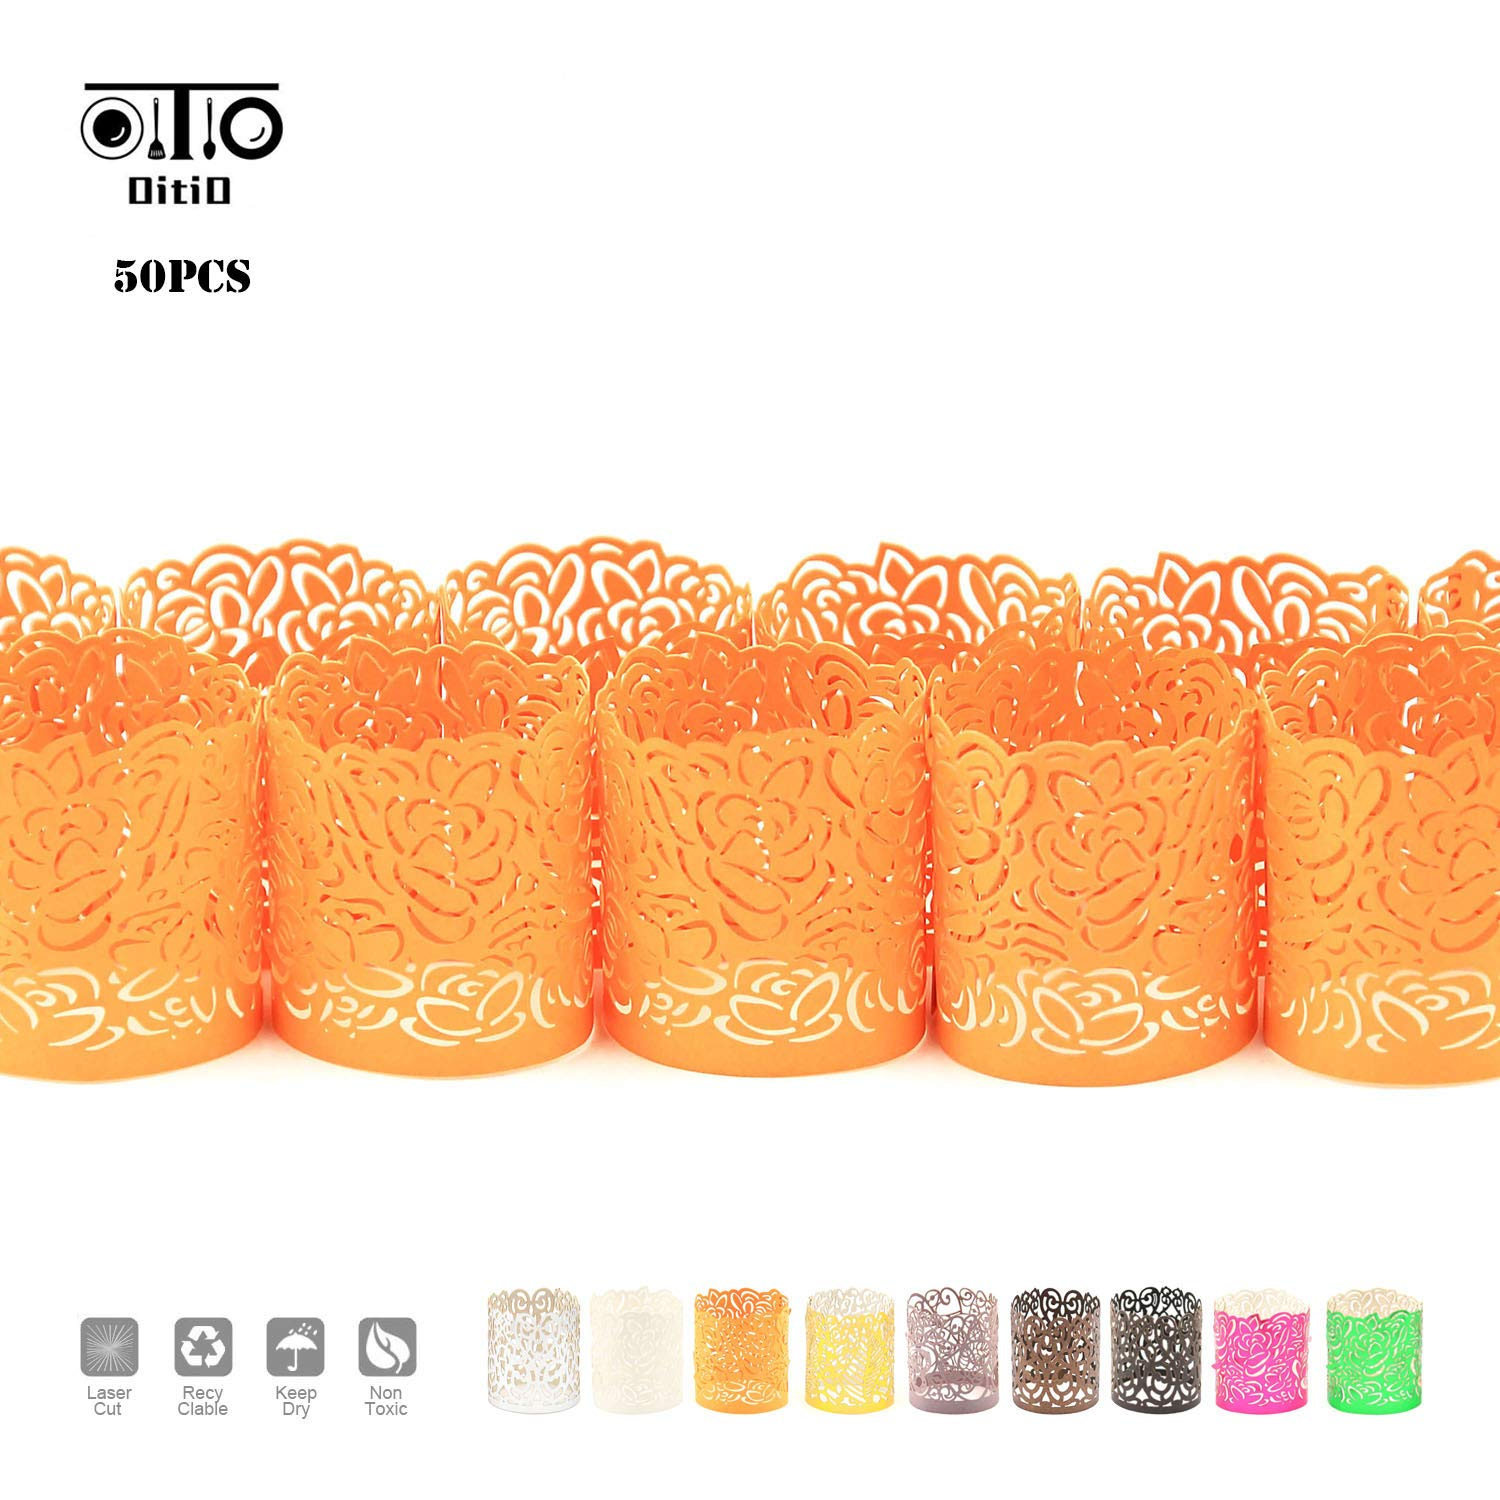 Starlight not Included OitiO Flameless Tea Light Laser Cut Decorative Wraps Candles Holders 50PCS for Flickering LED Battery Tealight Candles